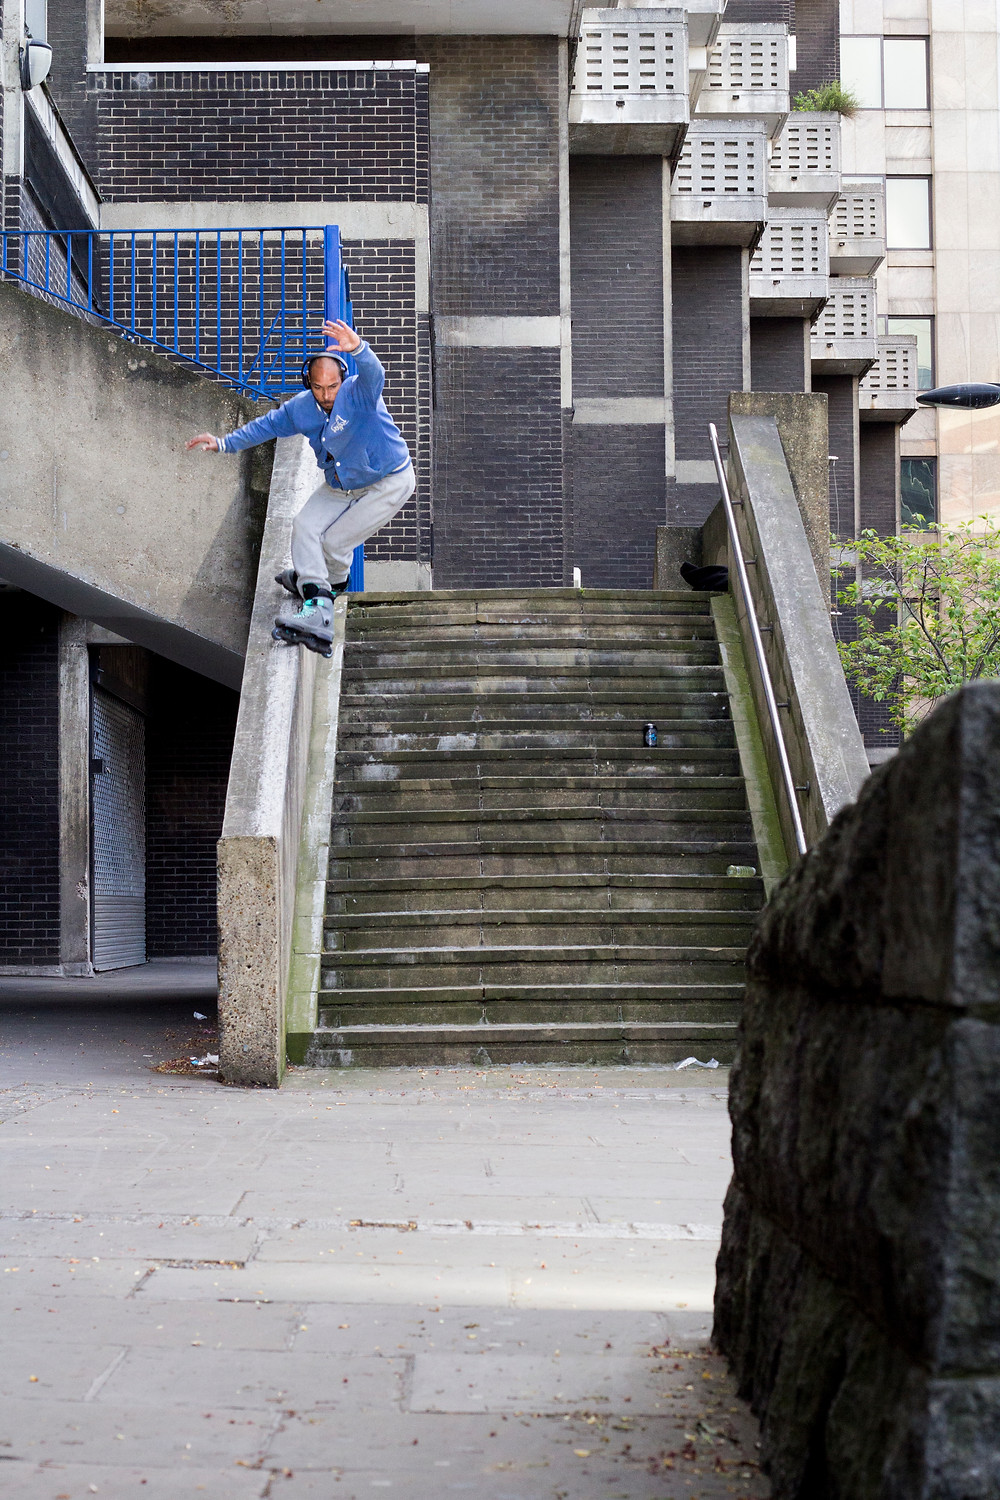 Leon Purdey - Frontside Unity | 50mm | ISO400 | f/6.3 | 1/250 | Flashes x1 | 12:35PM |